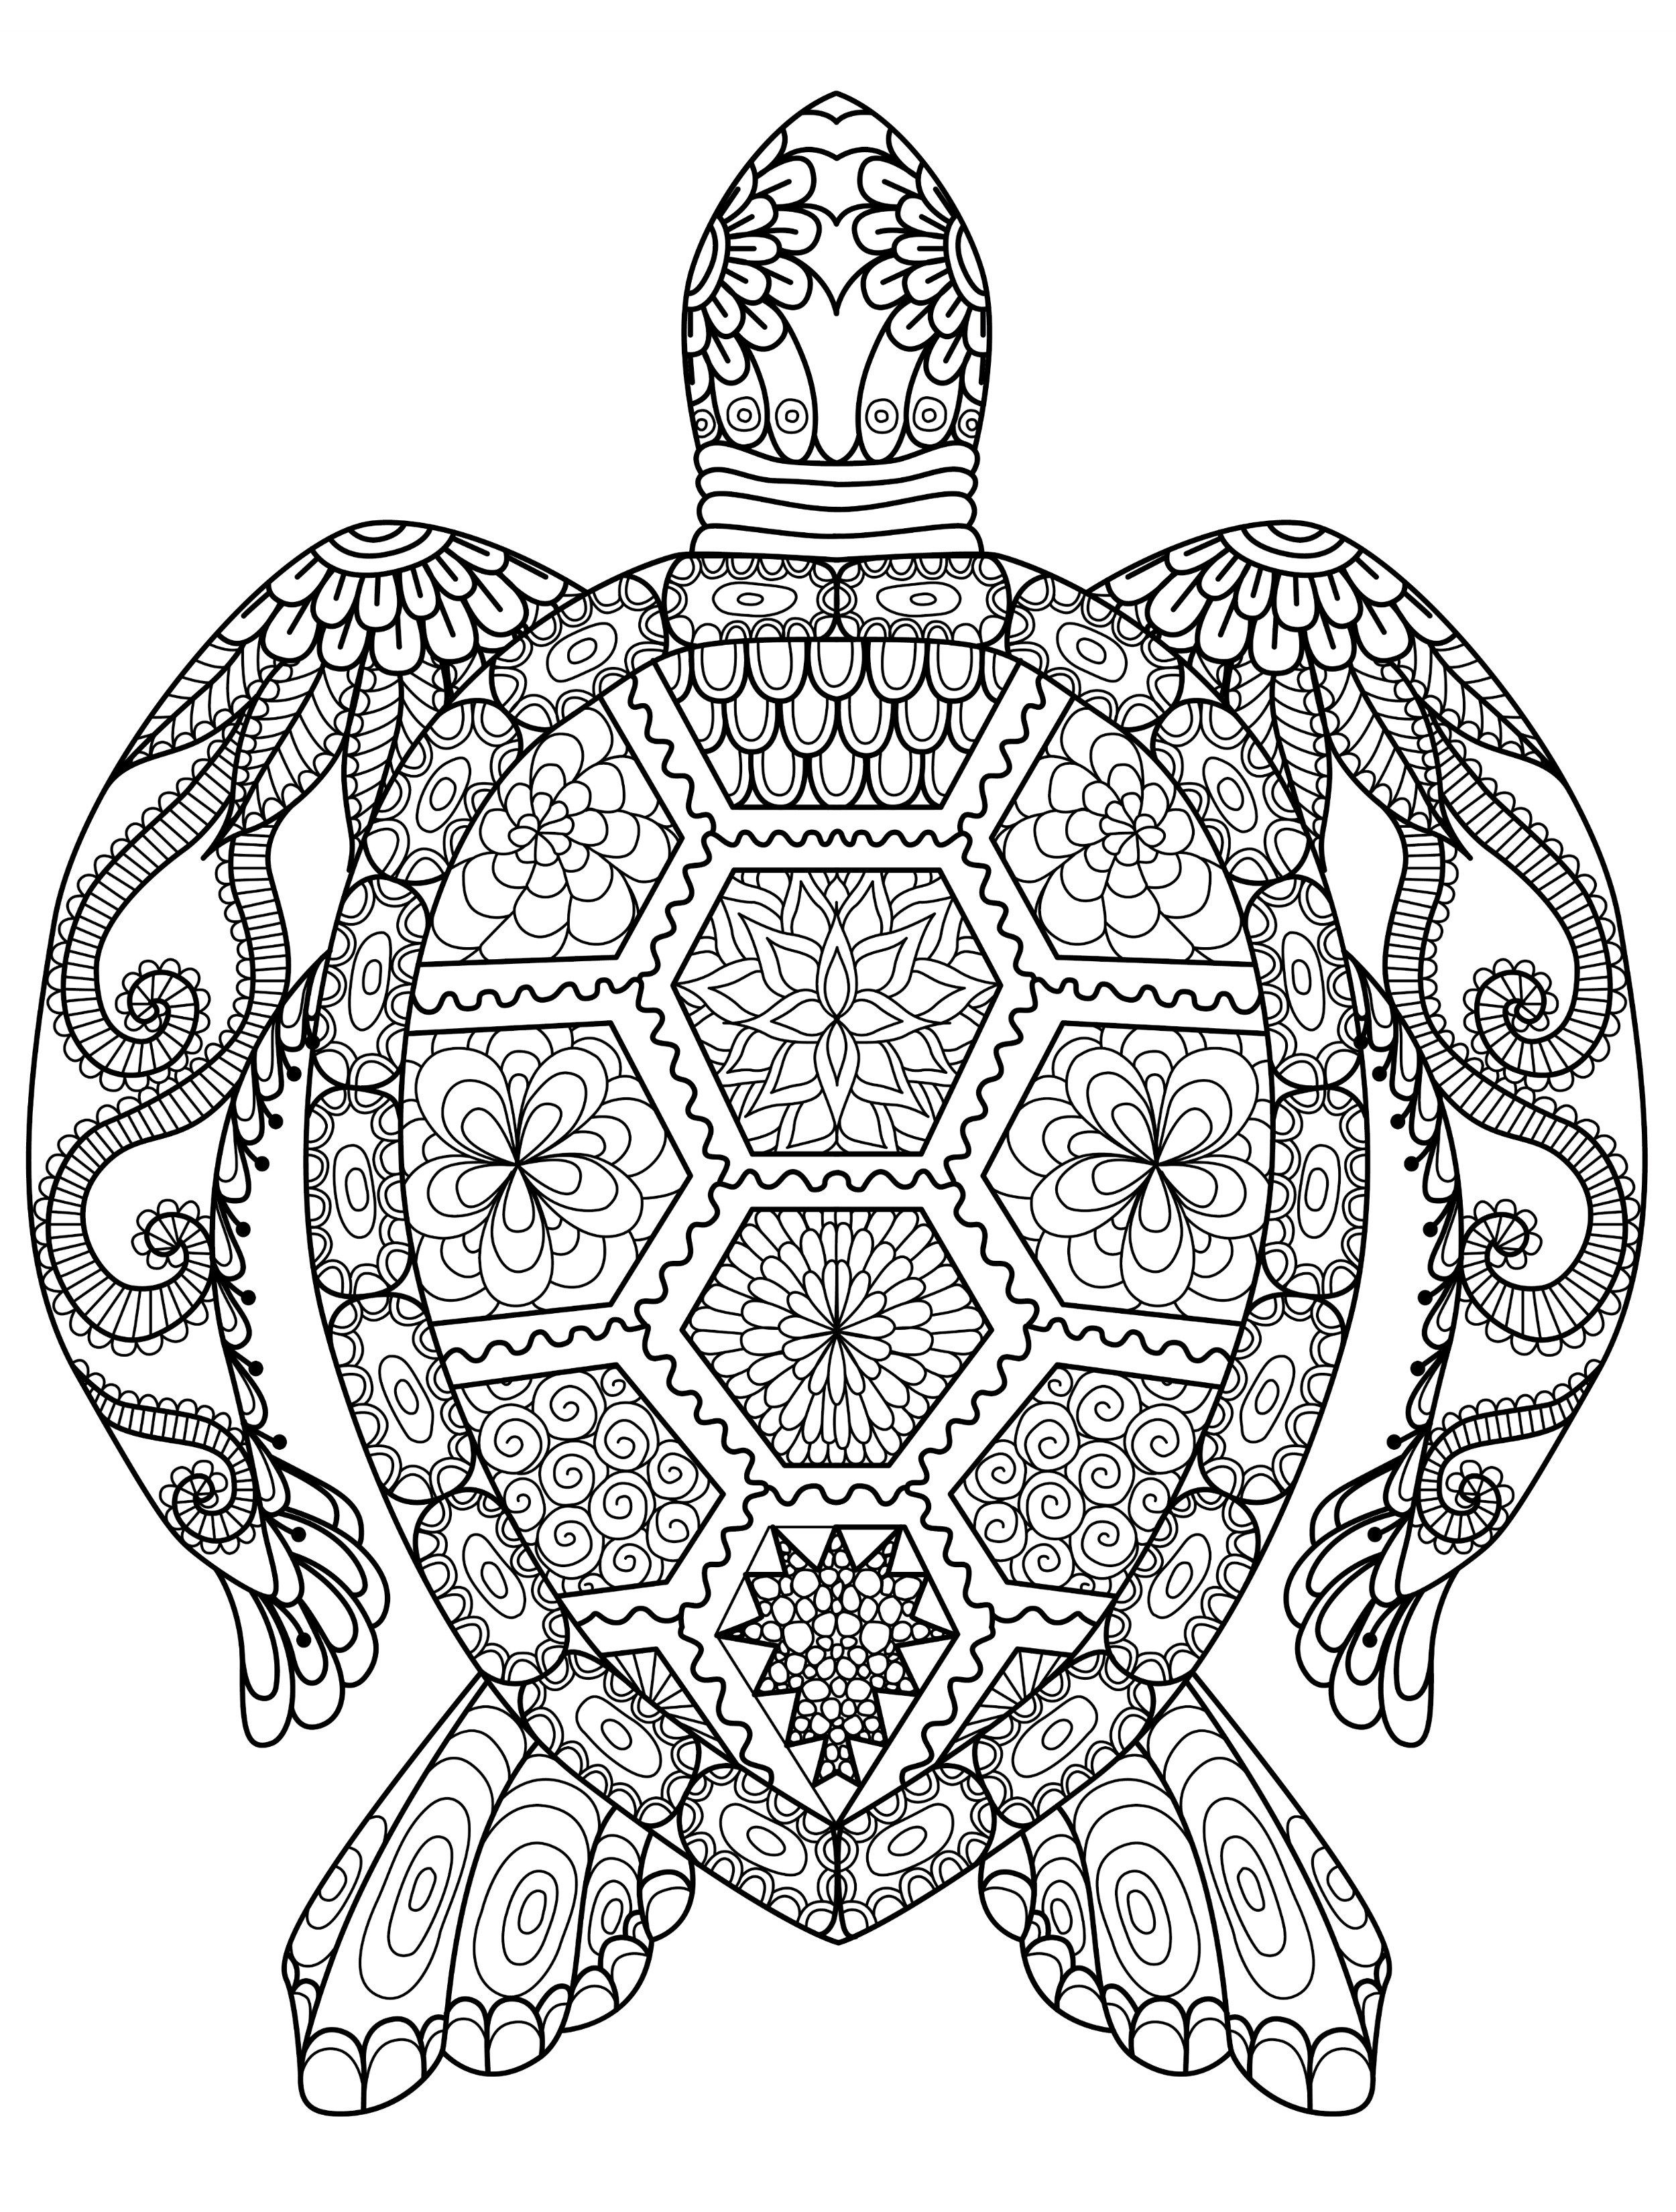 cool designs to color cool designs coloring pages coloring home cool designs to color